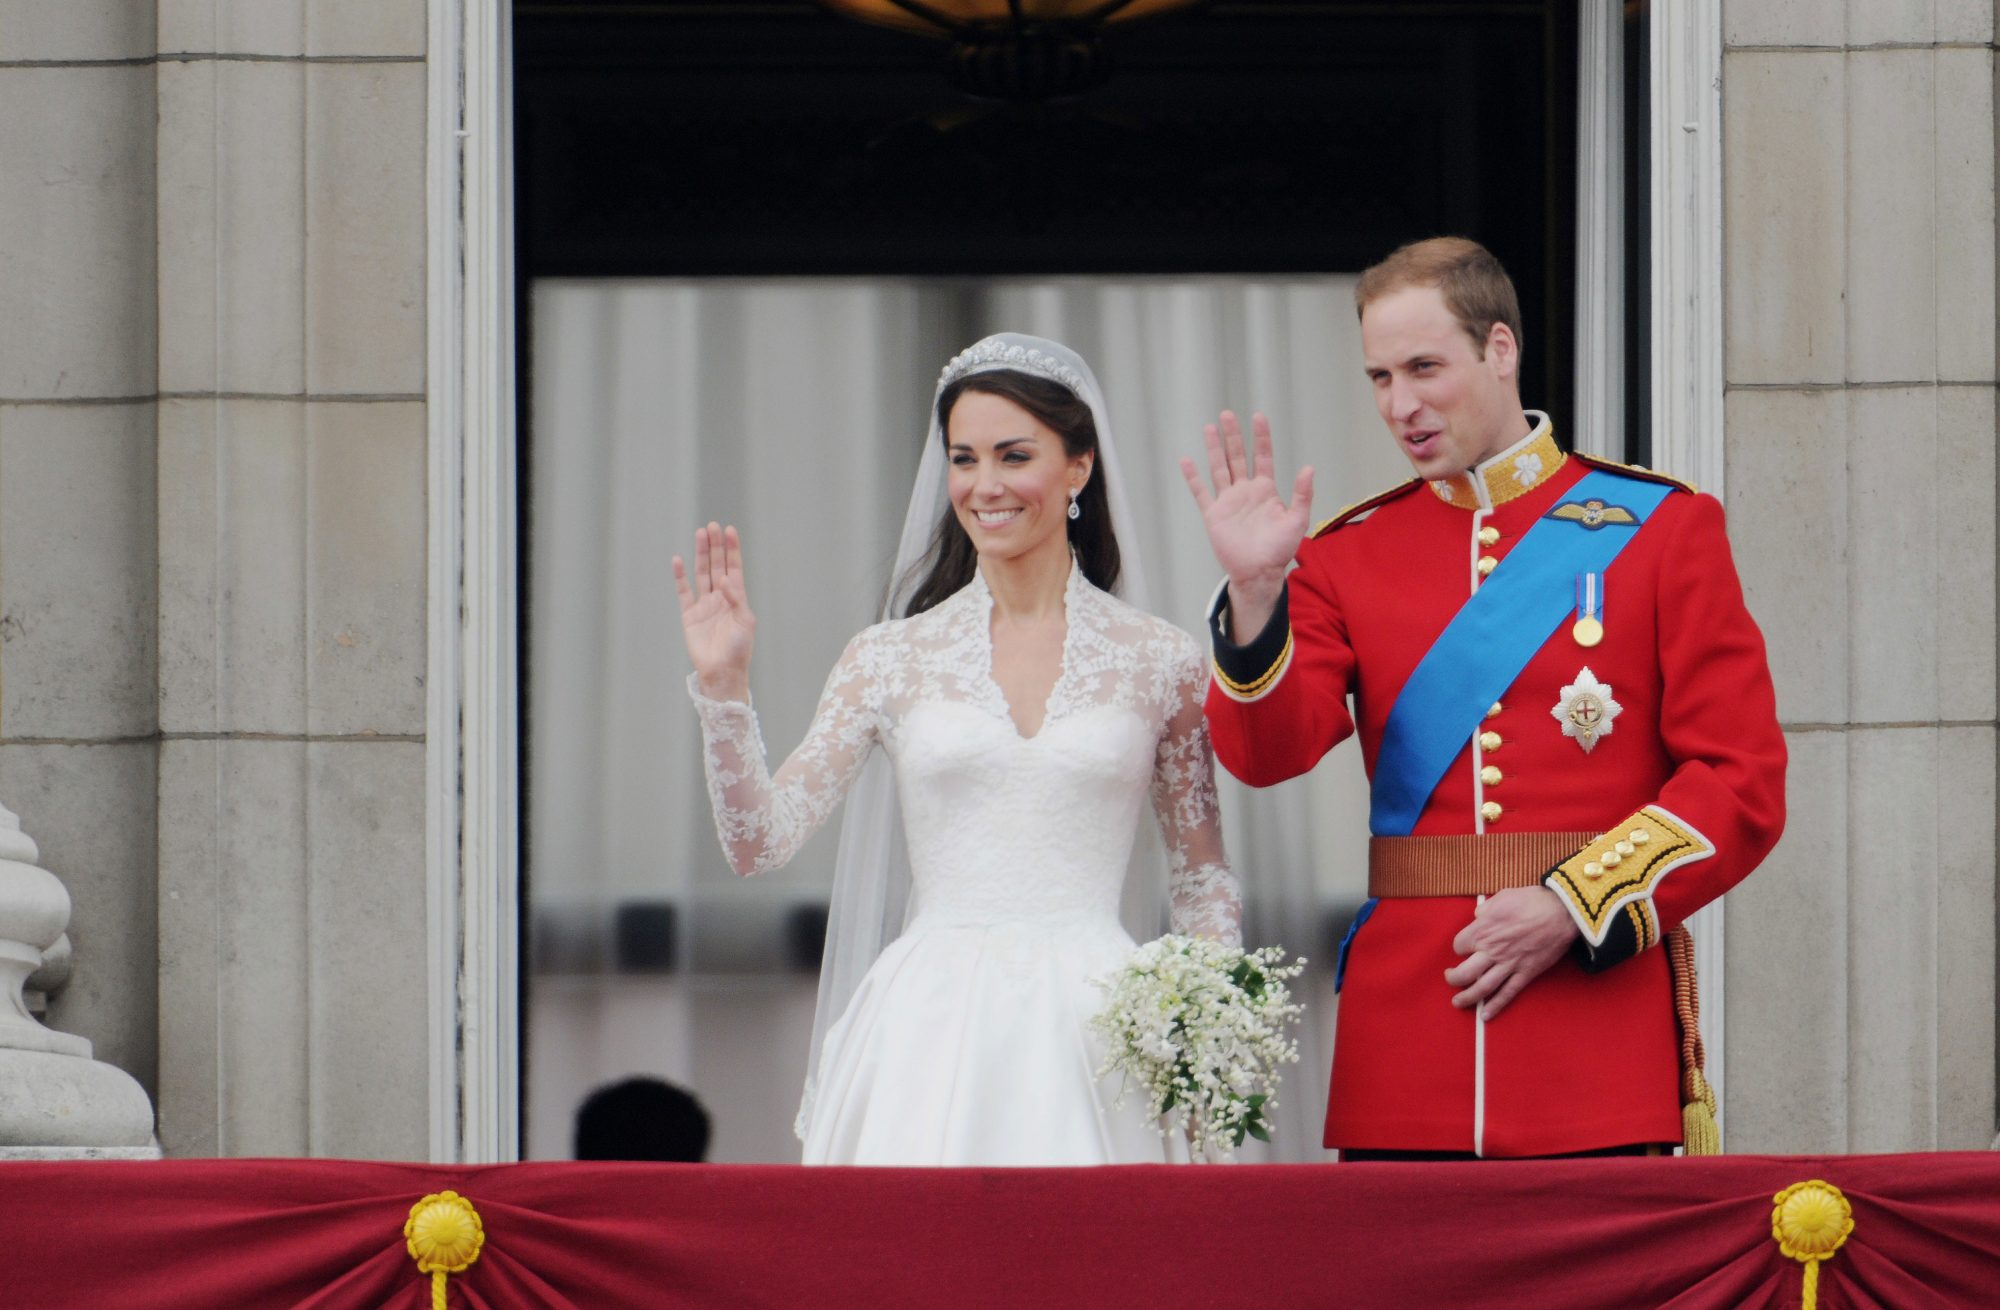 Kate Middleton and Prince William Waving After Wedding